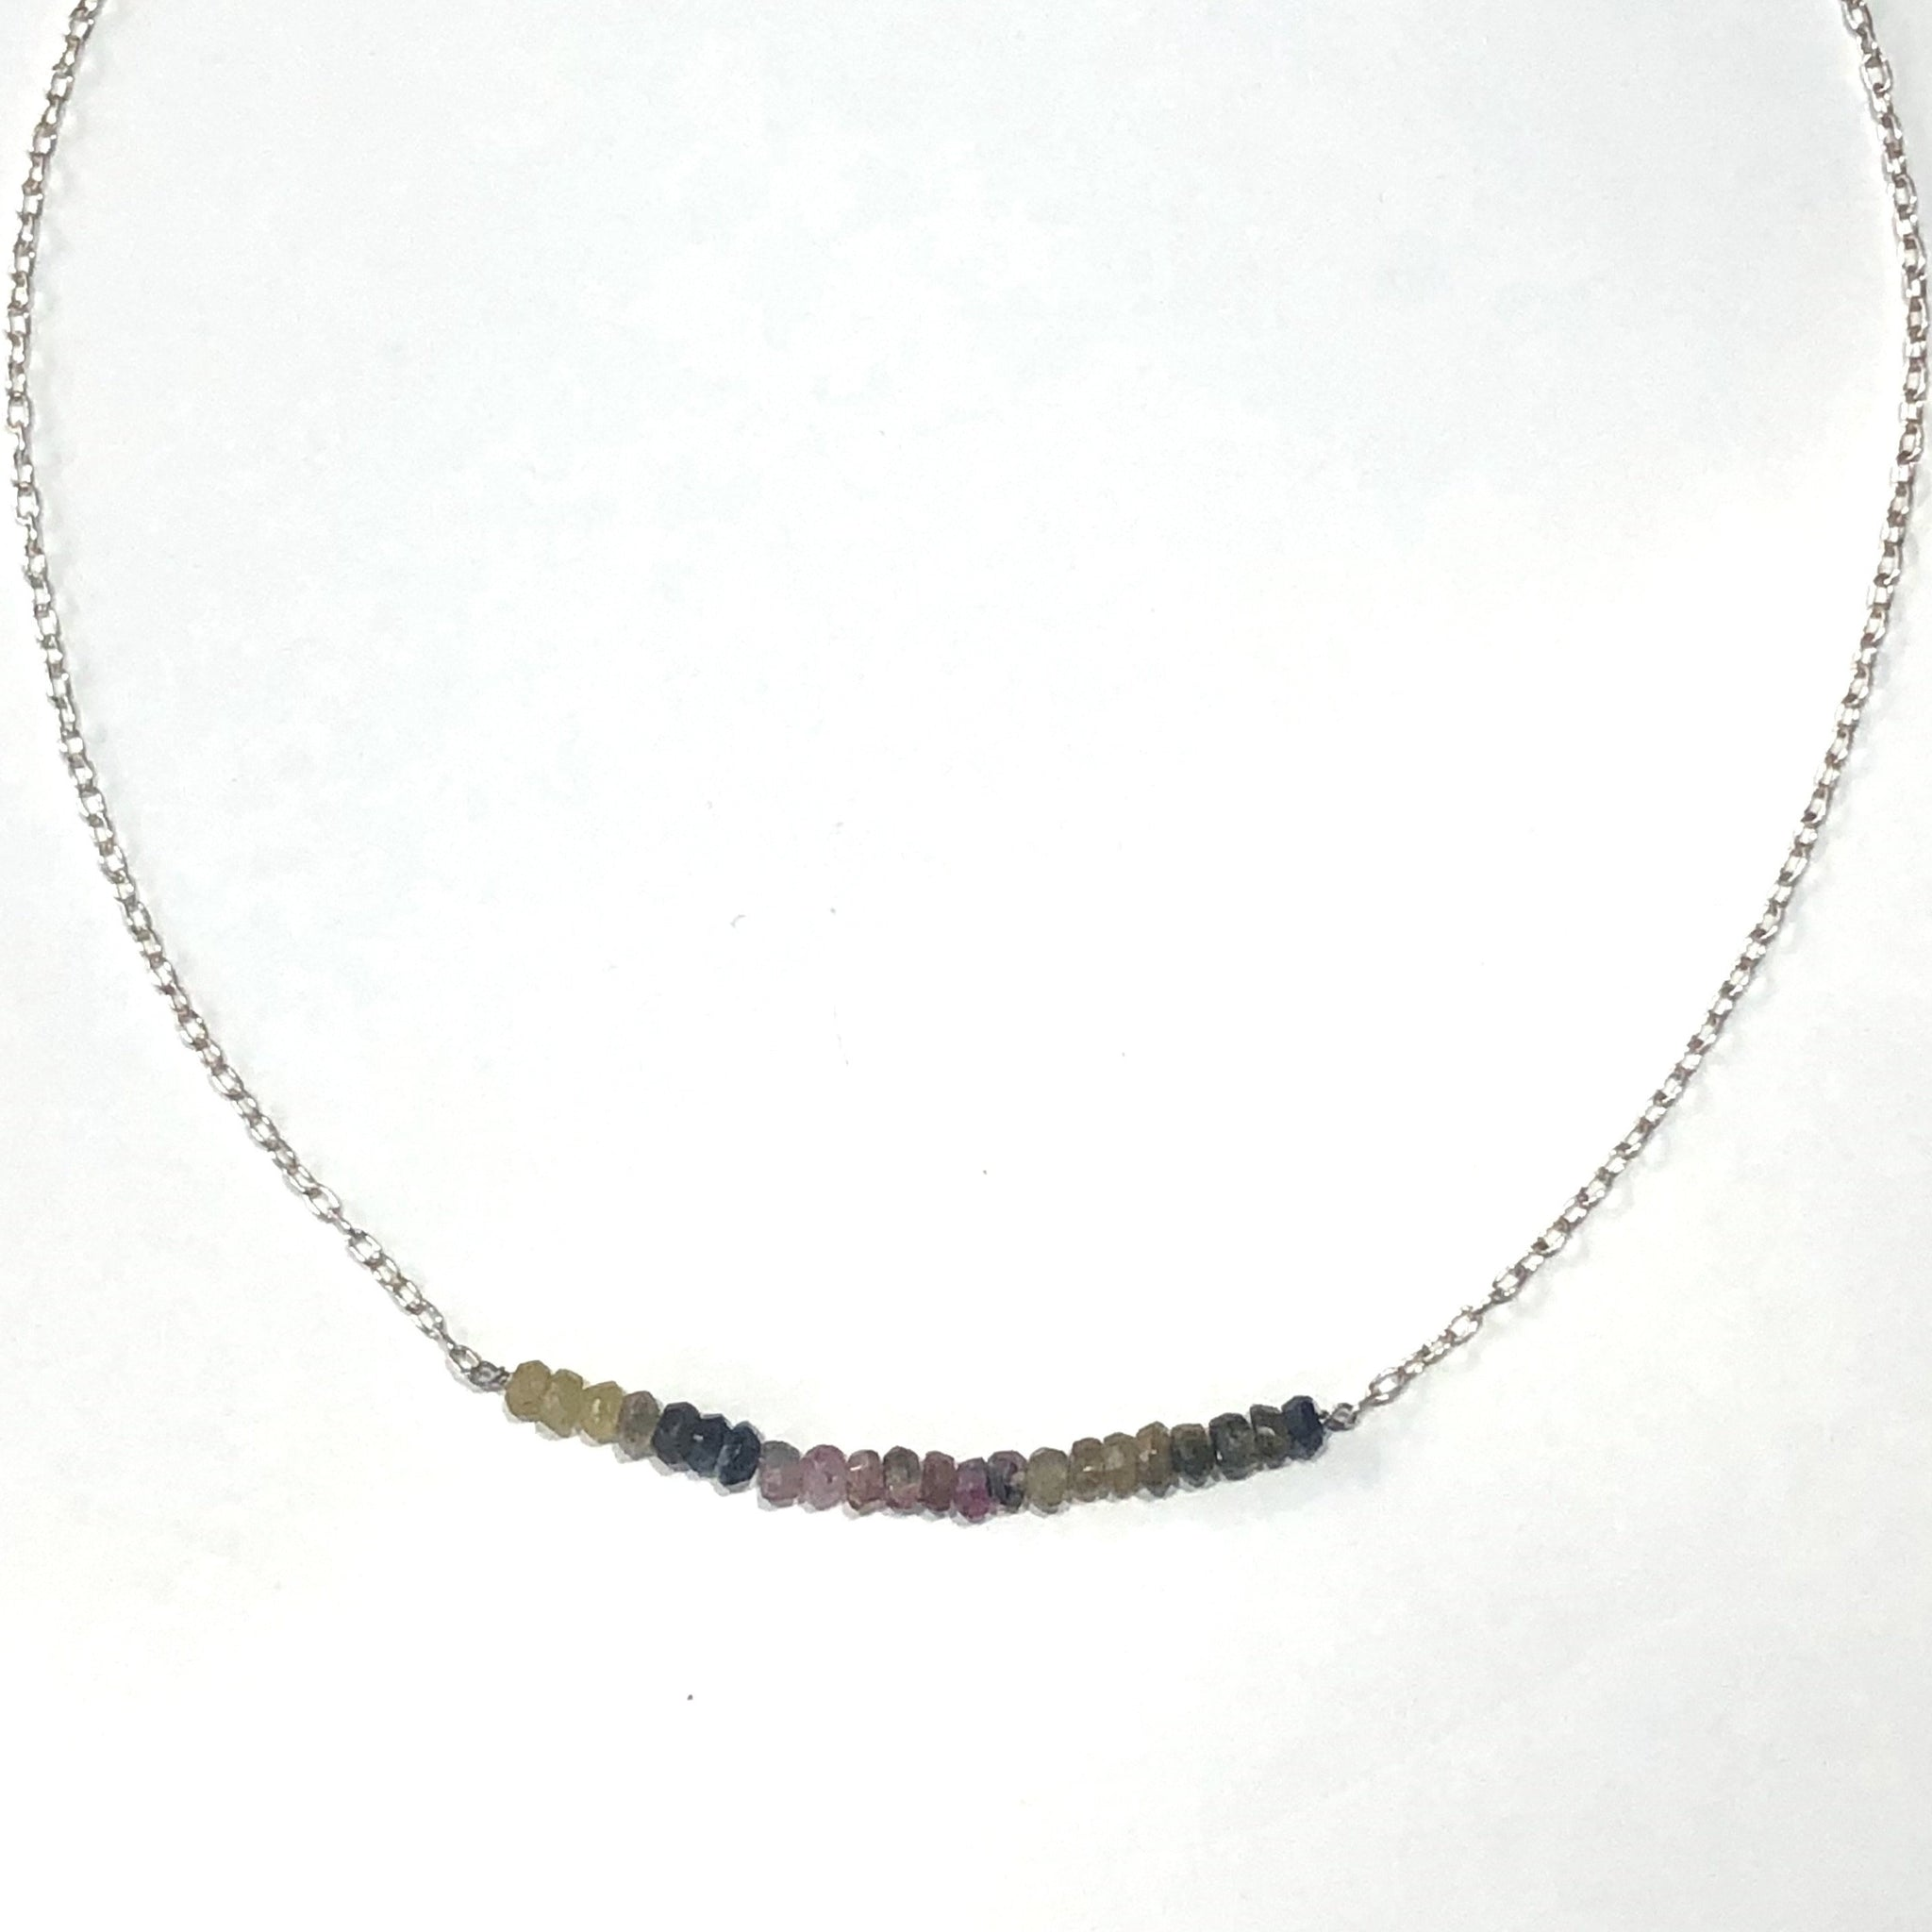 ombre tourmaline bead necklace